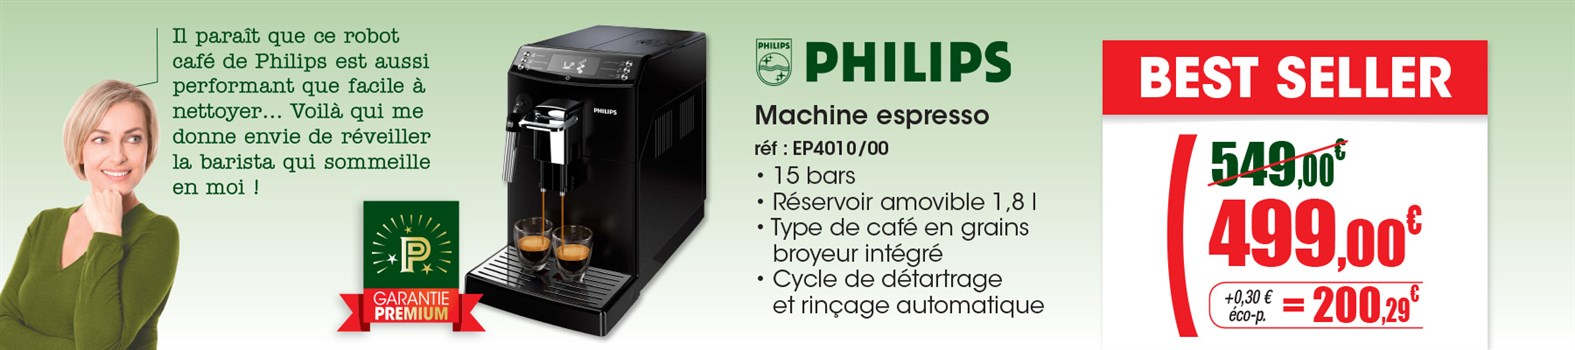 Expresso avec broyeur Philips EP4010/00